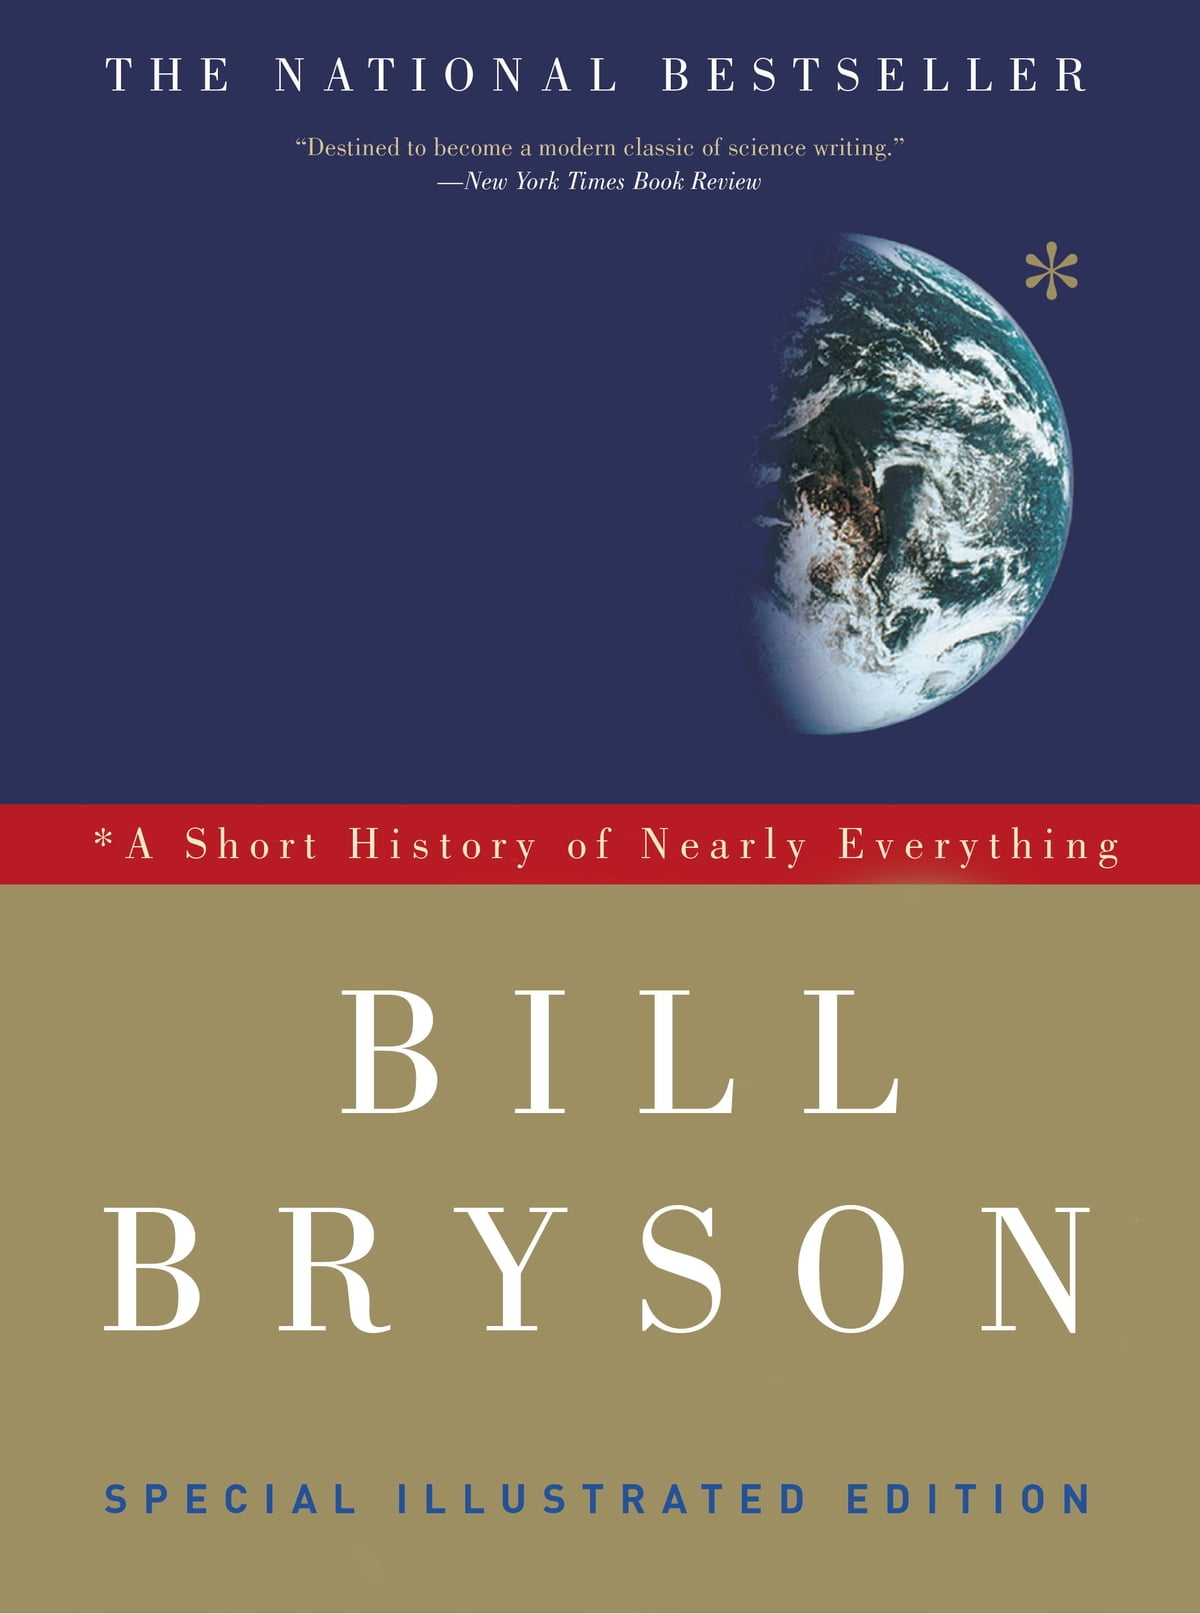 A Short History of Nearly Everything: Special Illustrated Edition eBook by  Bill Bryson - 9780307885166 | Rakuten Kobo